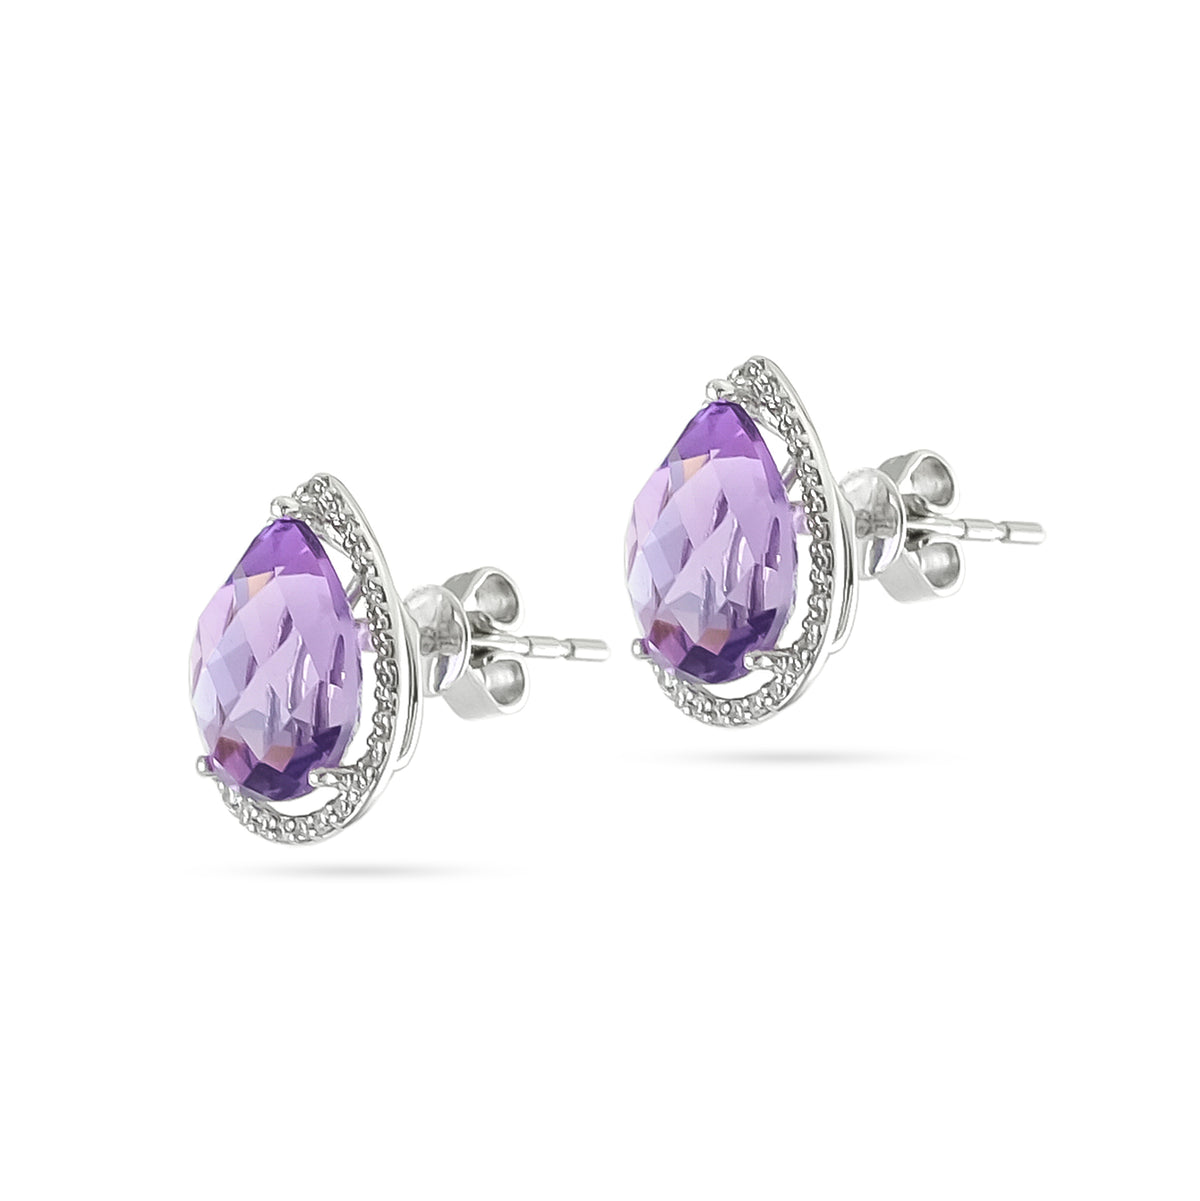 9ct White Gold Amethyst and Diamond Cluster Stud Earrings